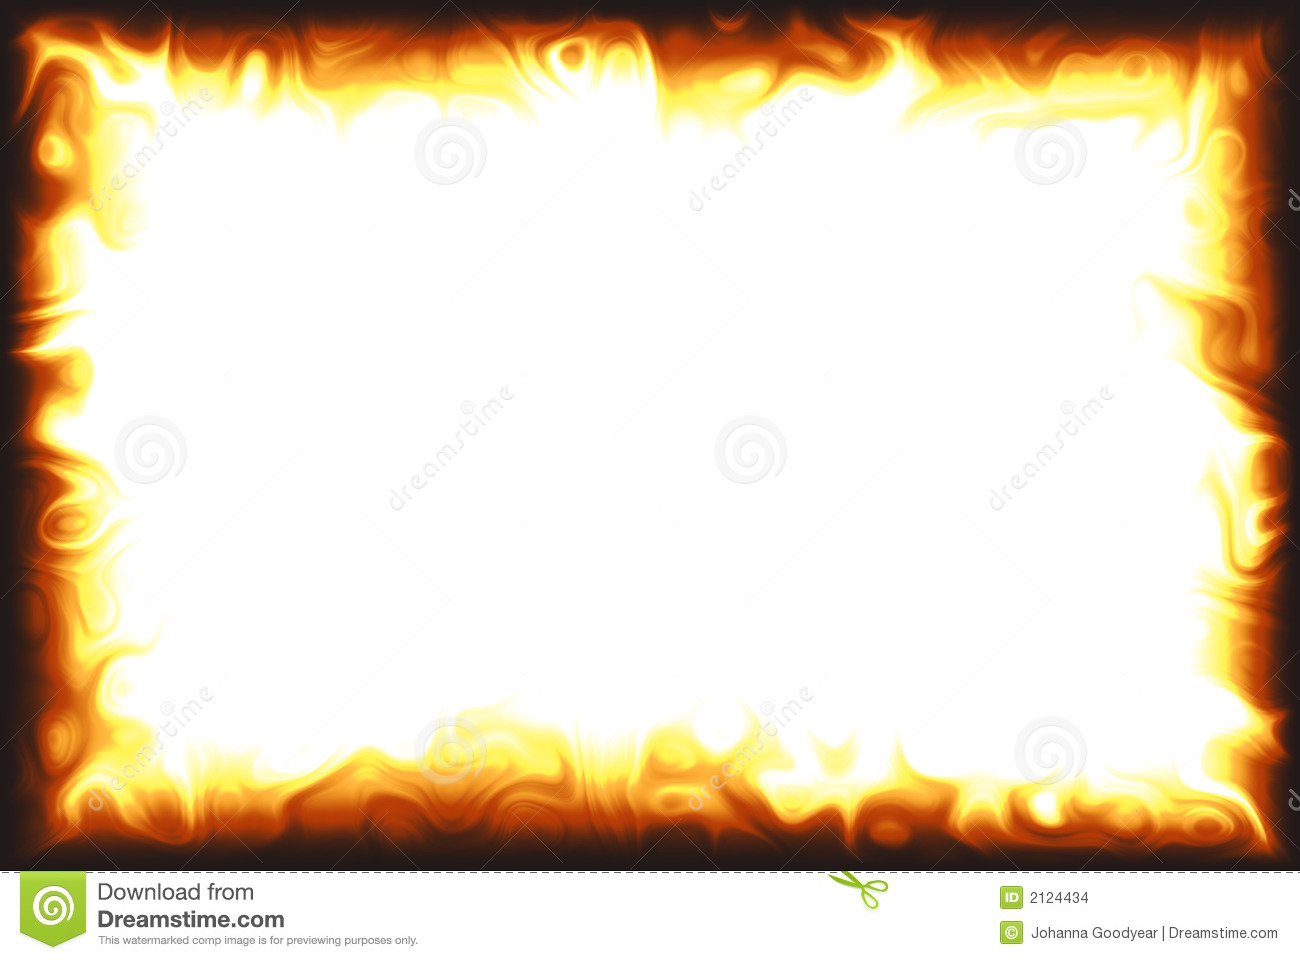 Flame Border Stock Images - Image: 2124434